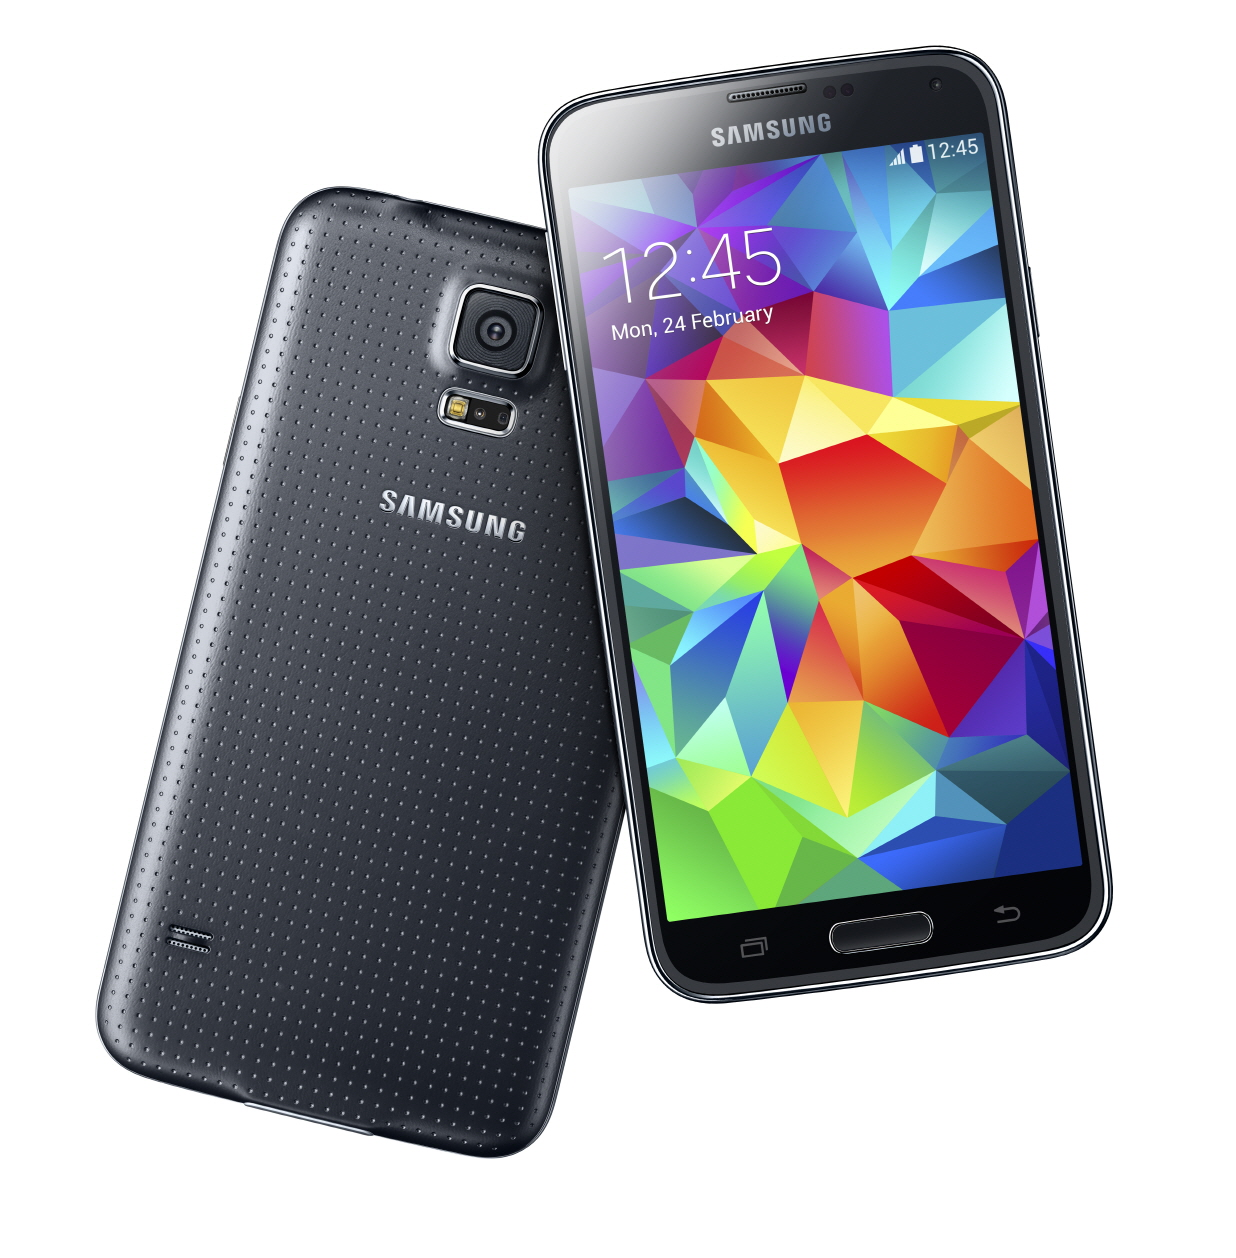 B-Grade Refurbished Samsung Galaxy S5 16GB G900a GSM Unlocked Android Smartphone - Black